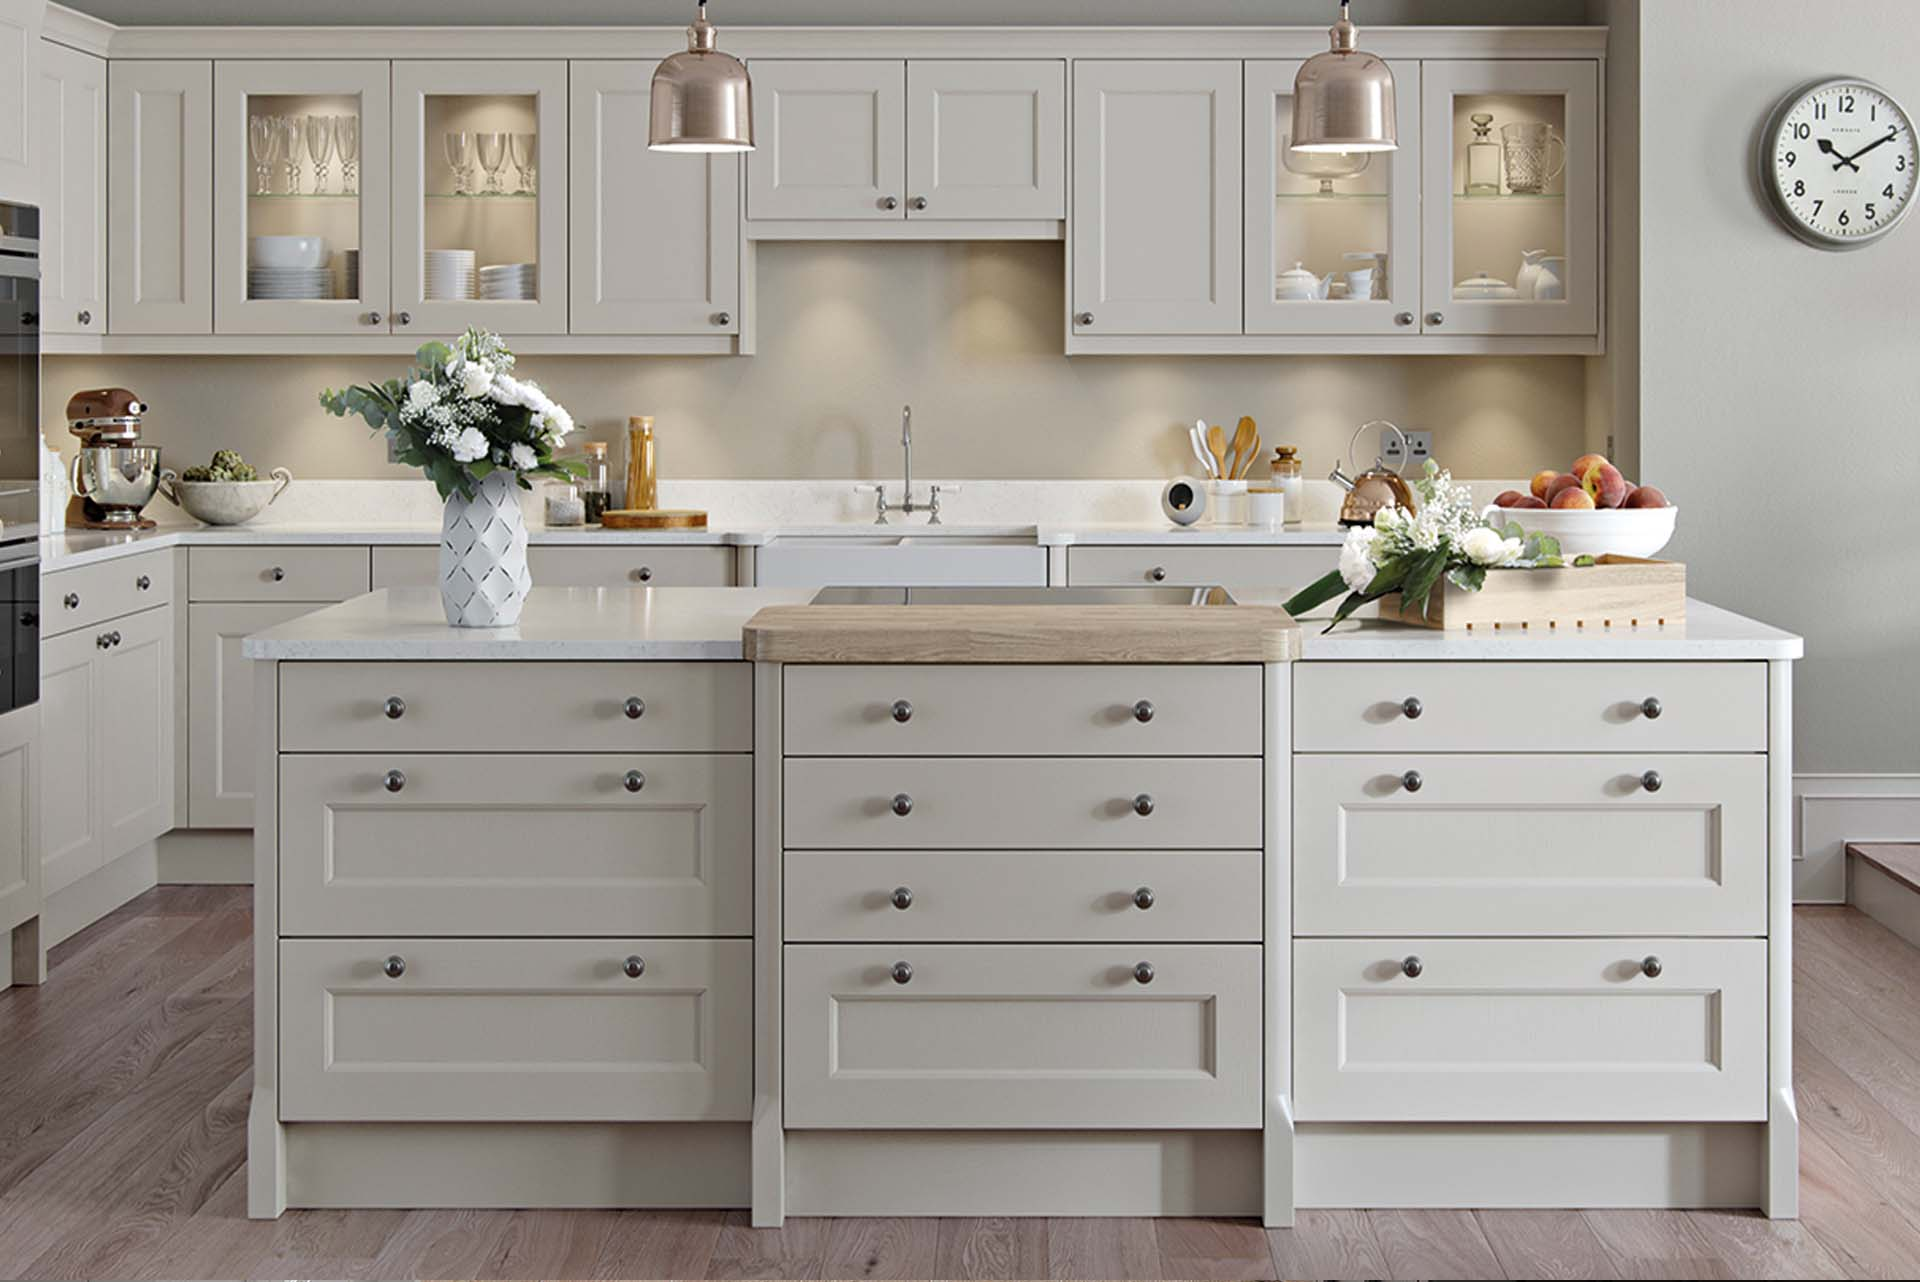 Burbidge kitchens specialist